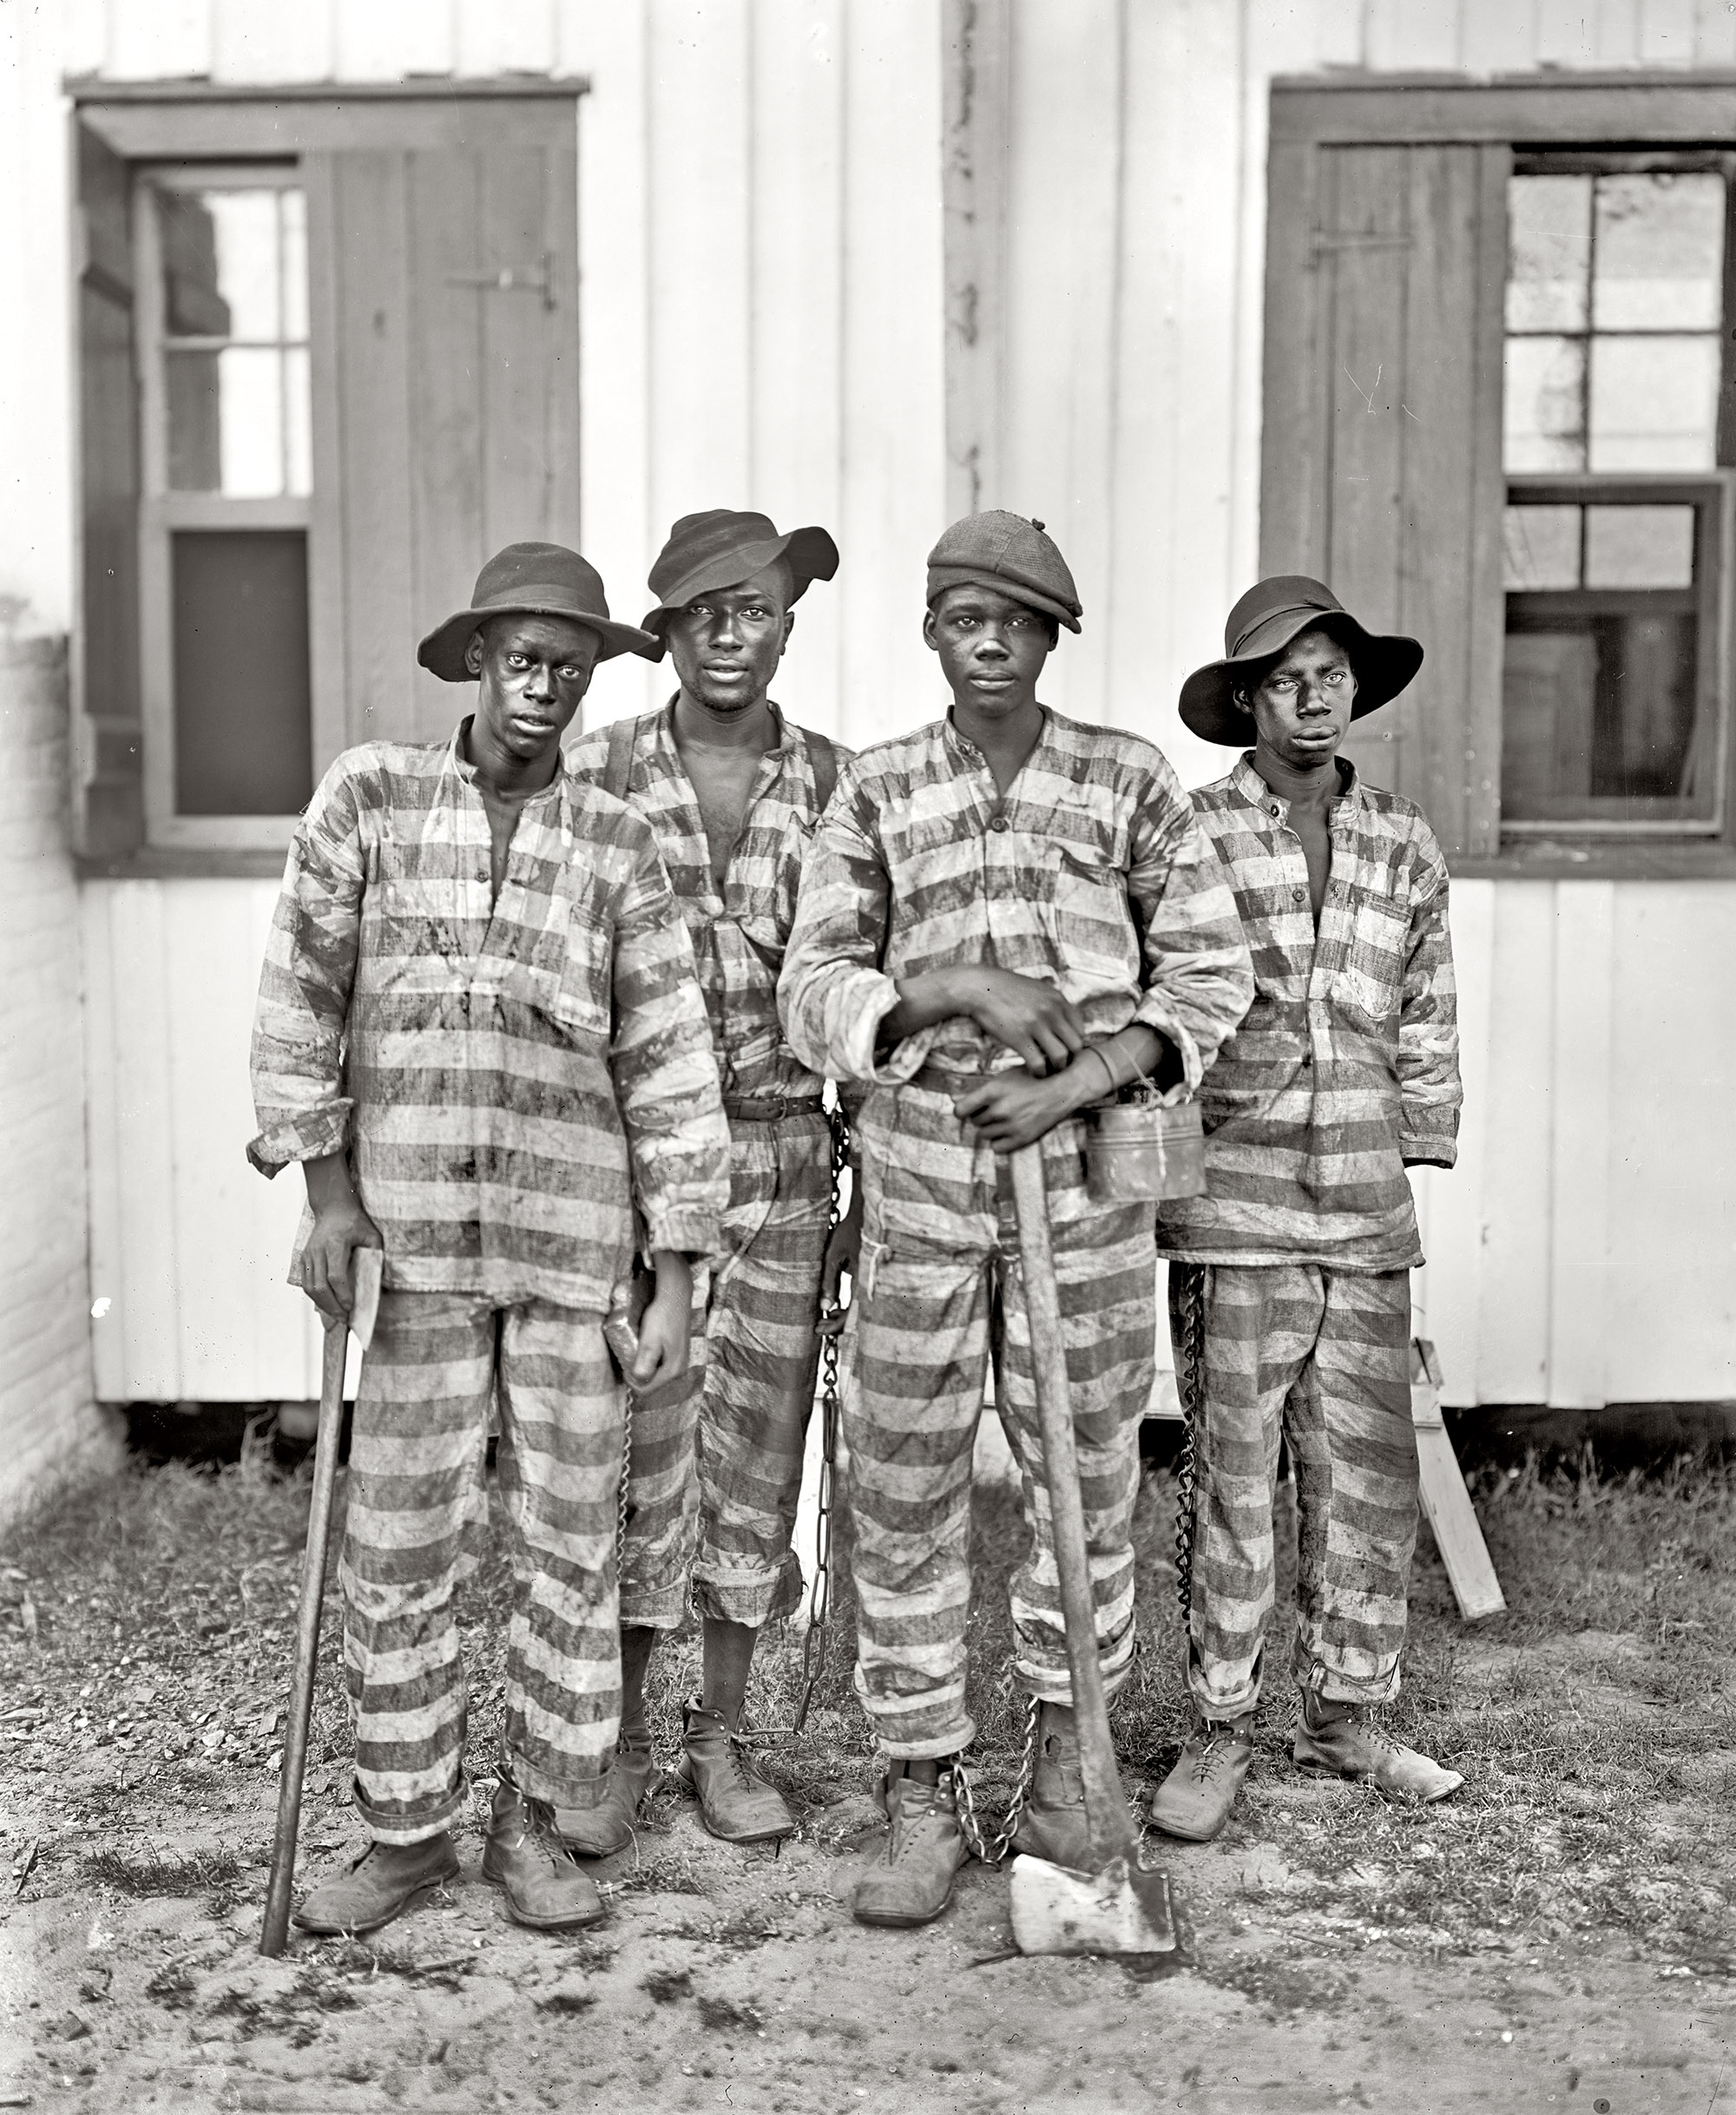 Circa 1905, in the American South.  A Southern chain gang.